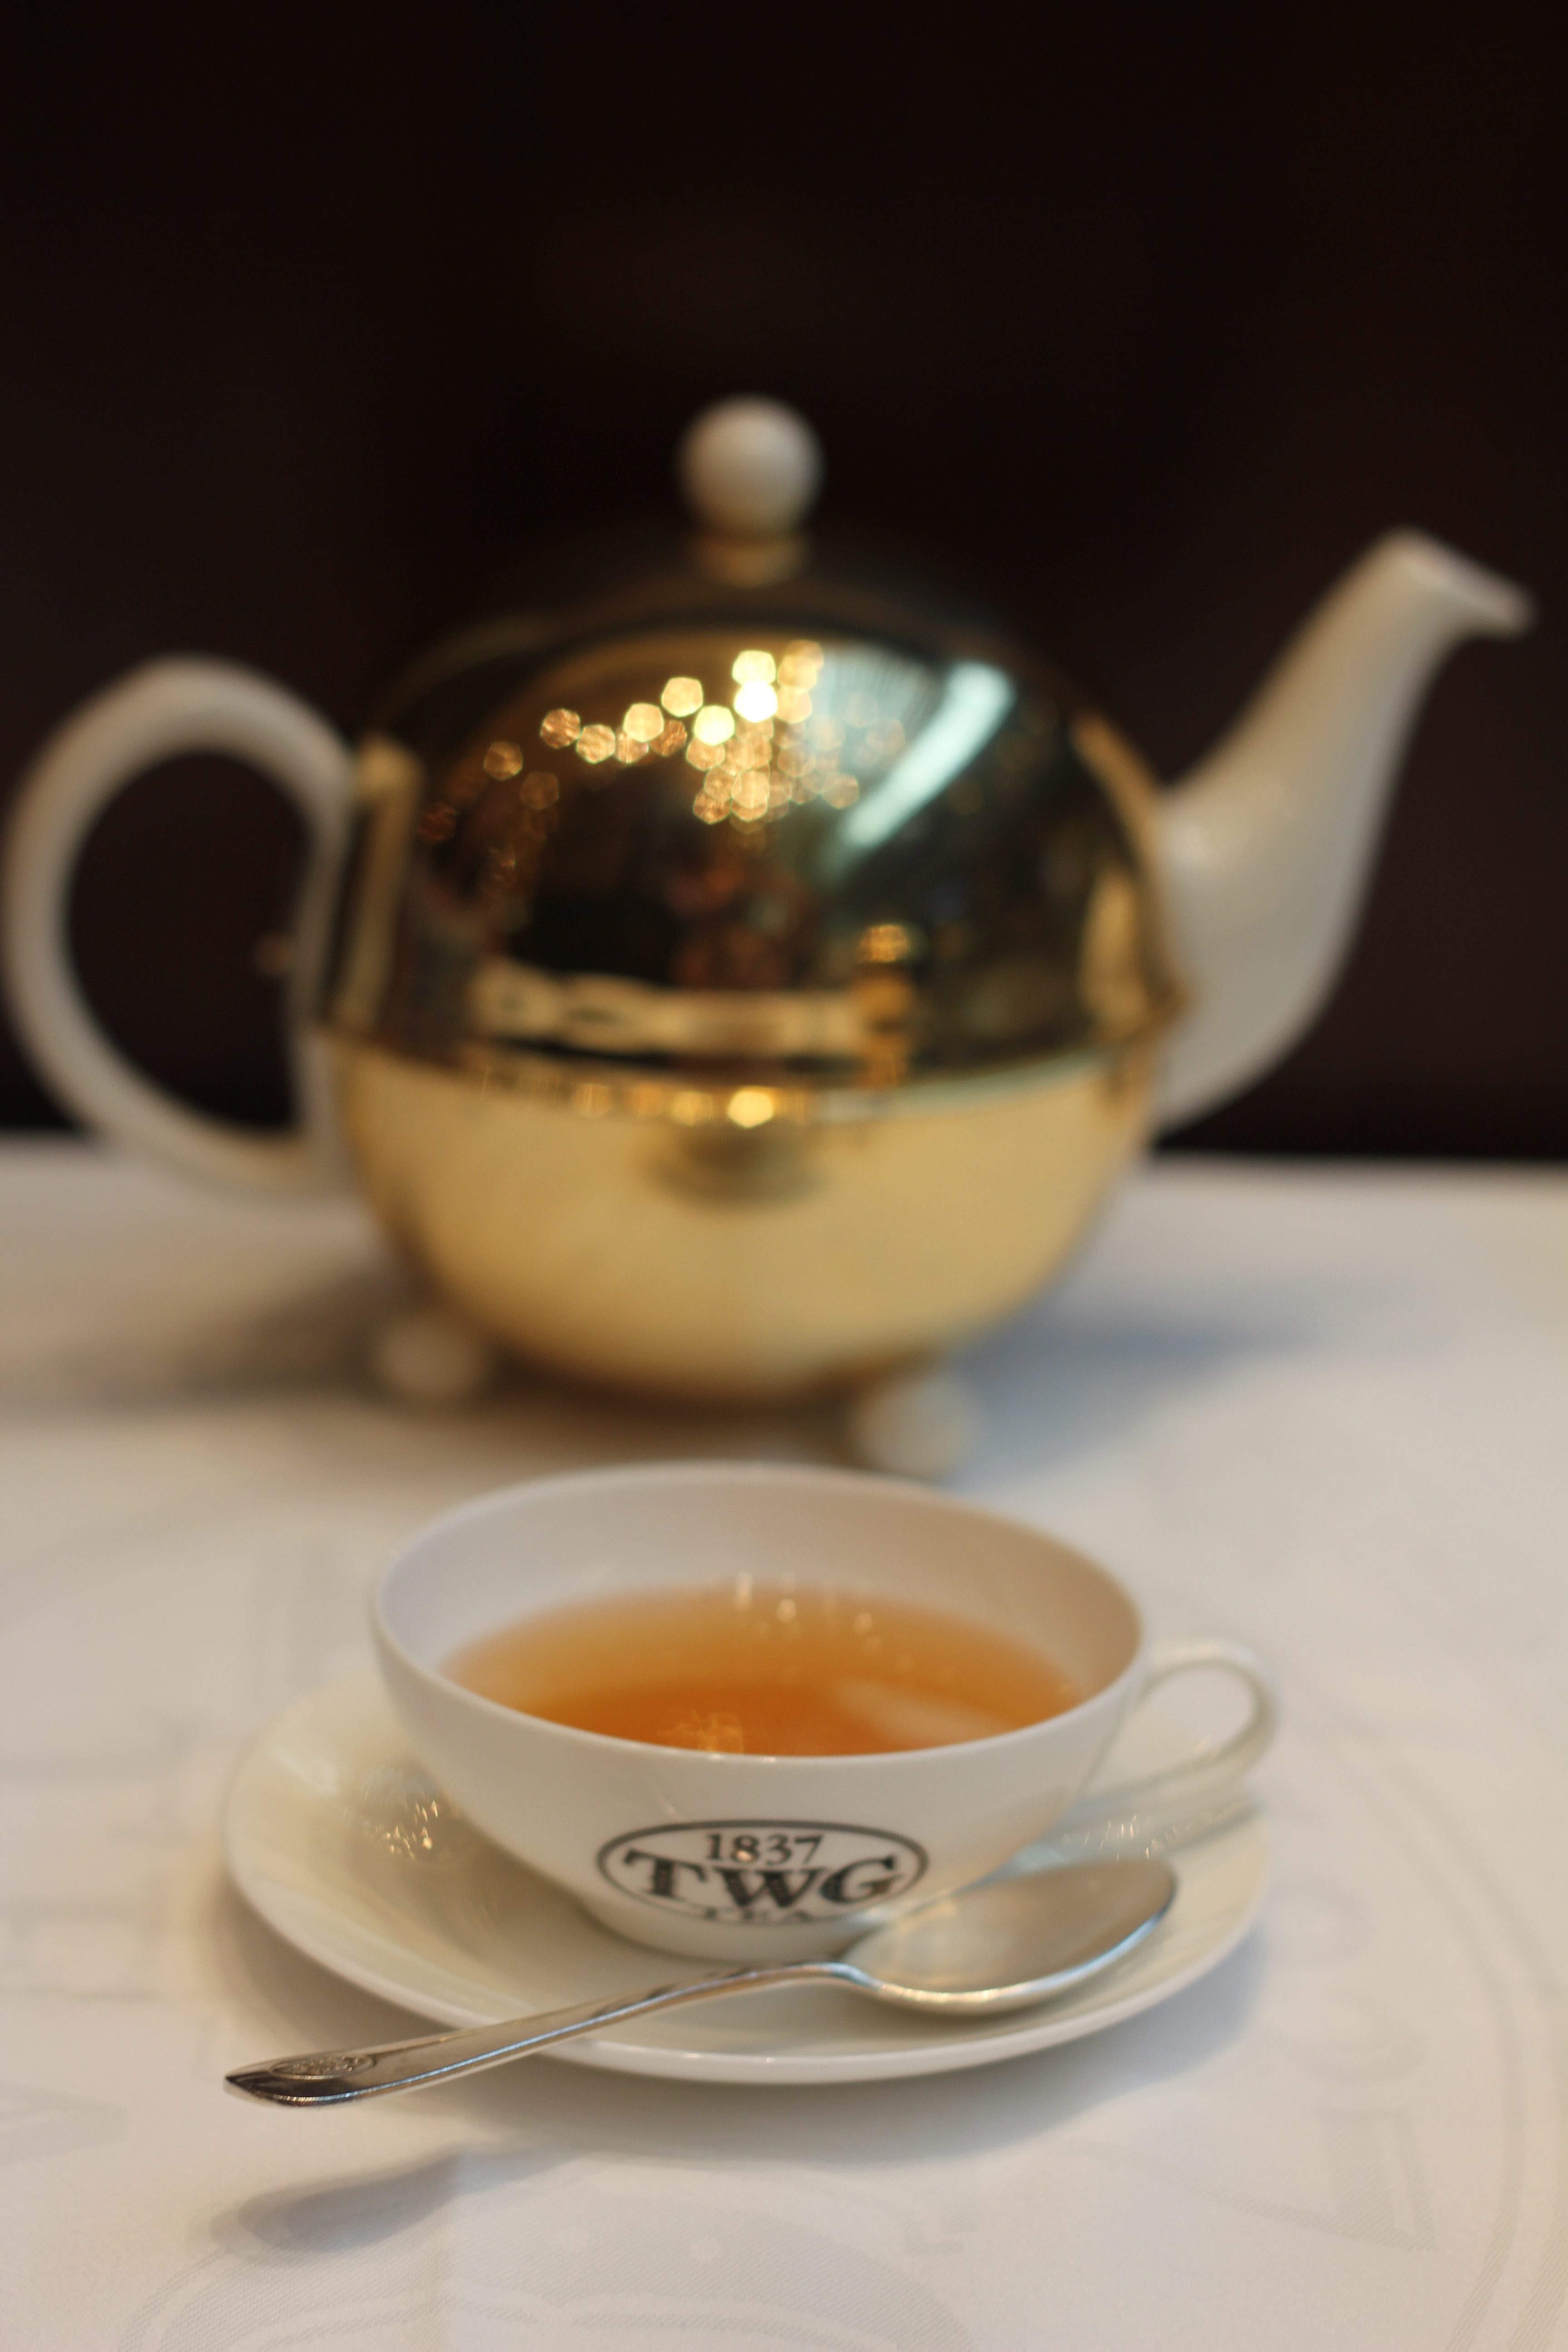 The Best Tea Shop In The World In Search Of Sunshine